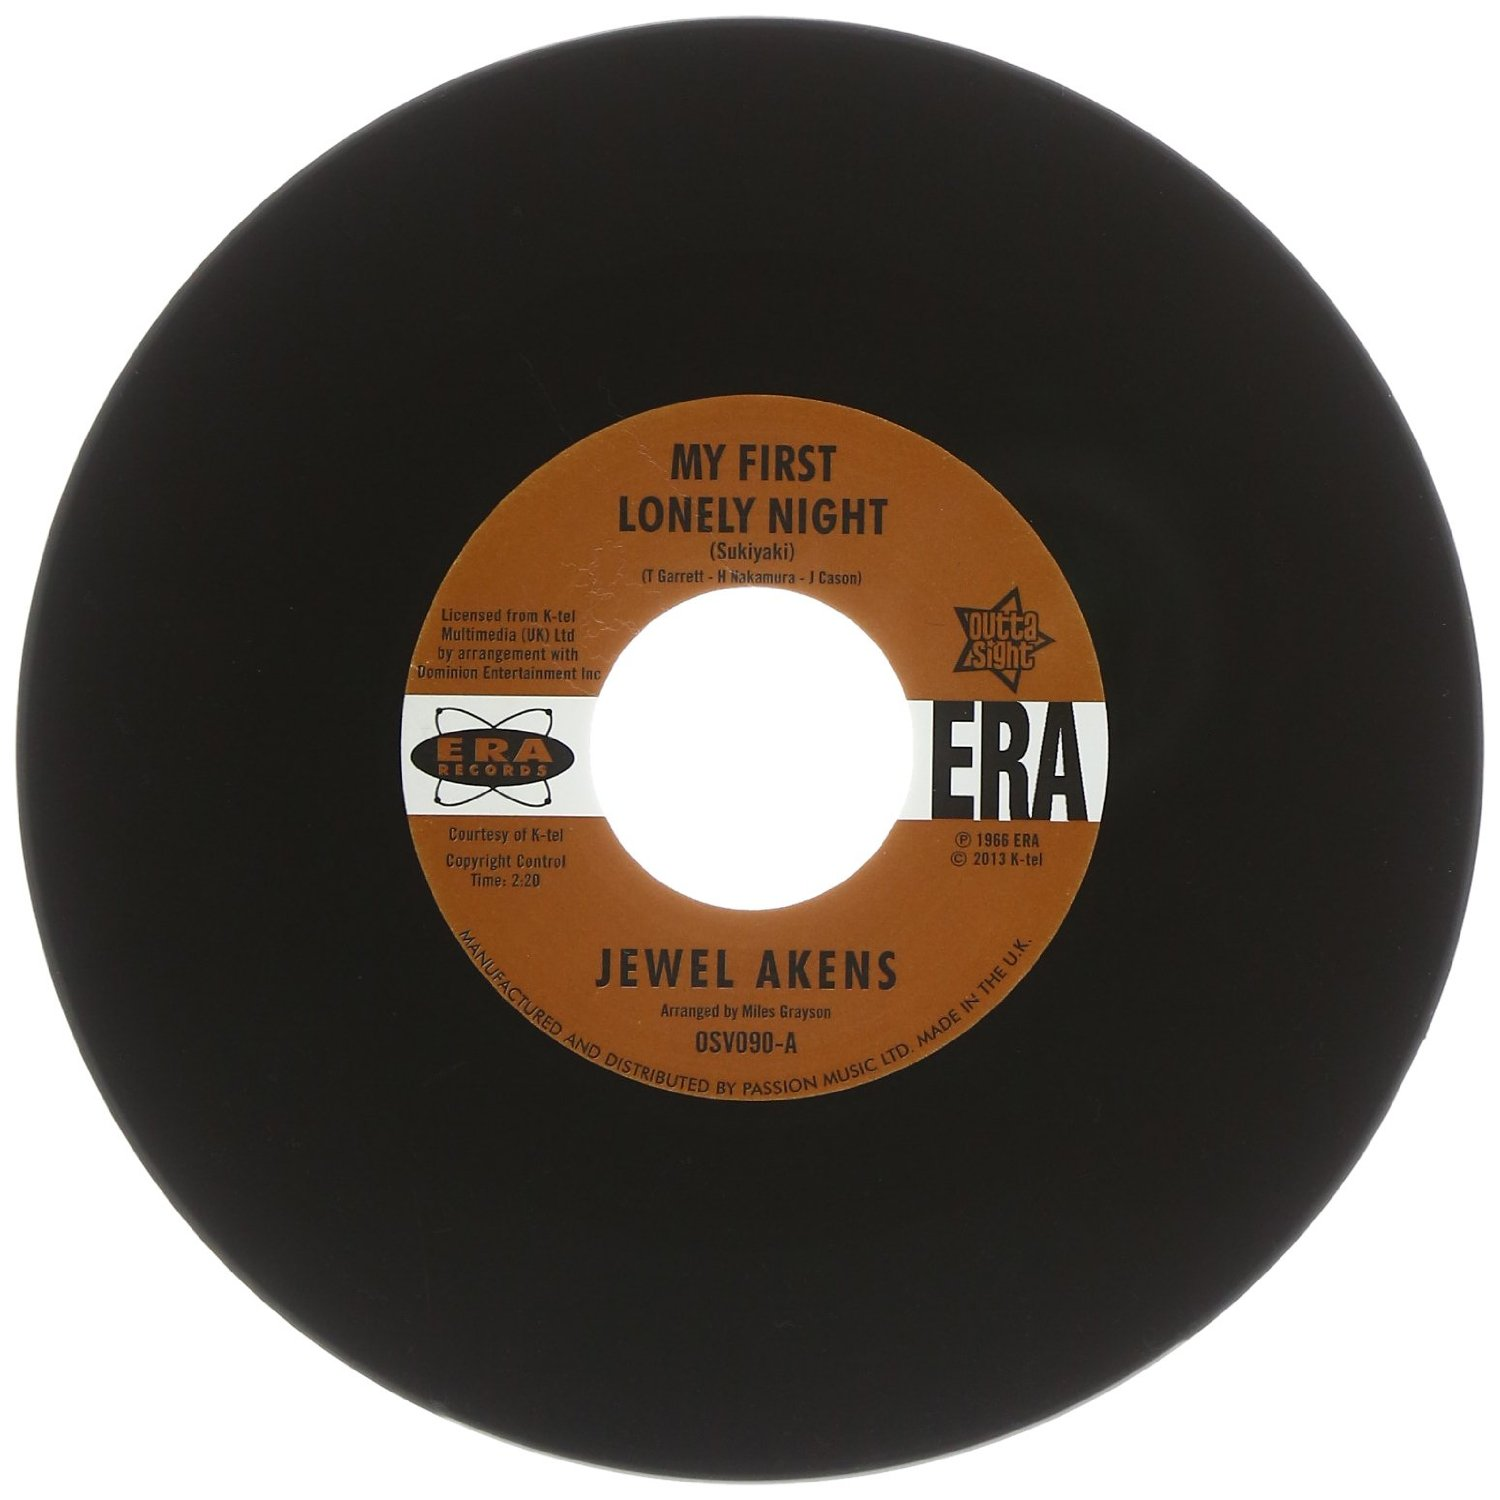 Jewel Akens – My First Lonely Night / A Slice Of The Pie 45 (Outta Sight) 7″ Vinyl